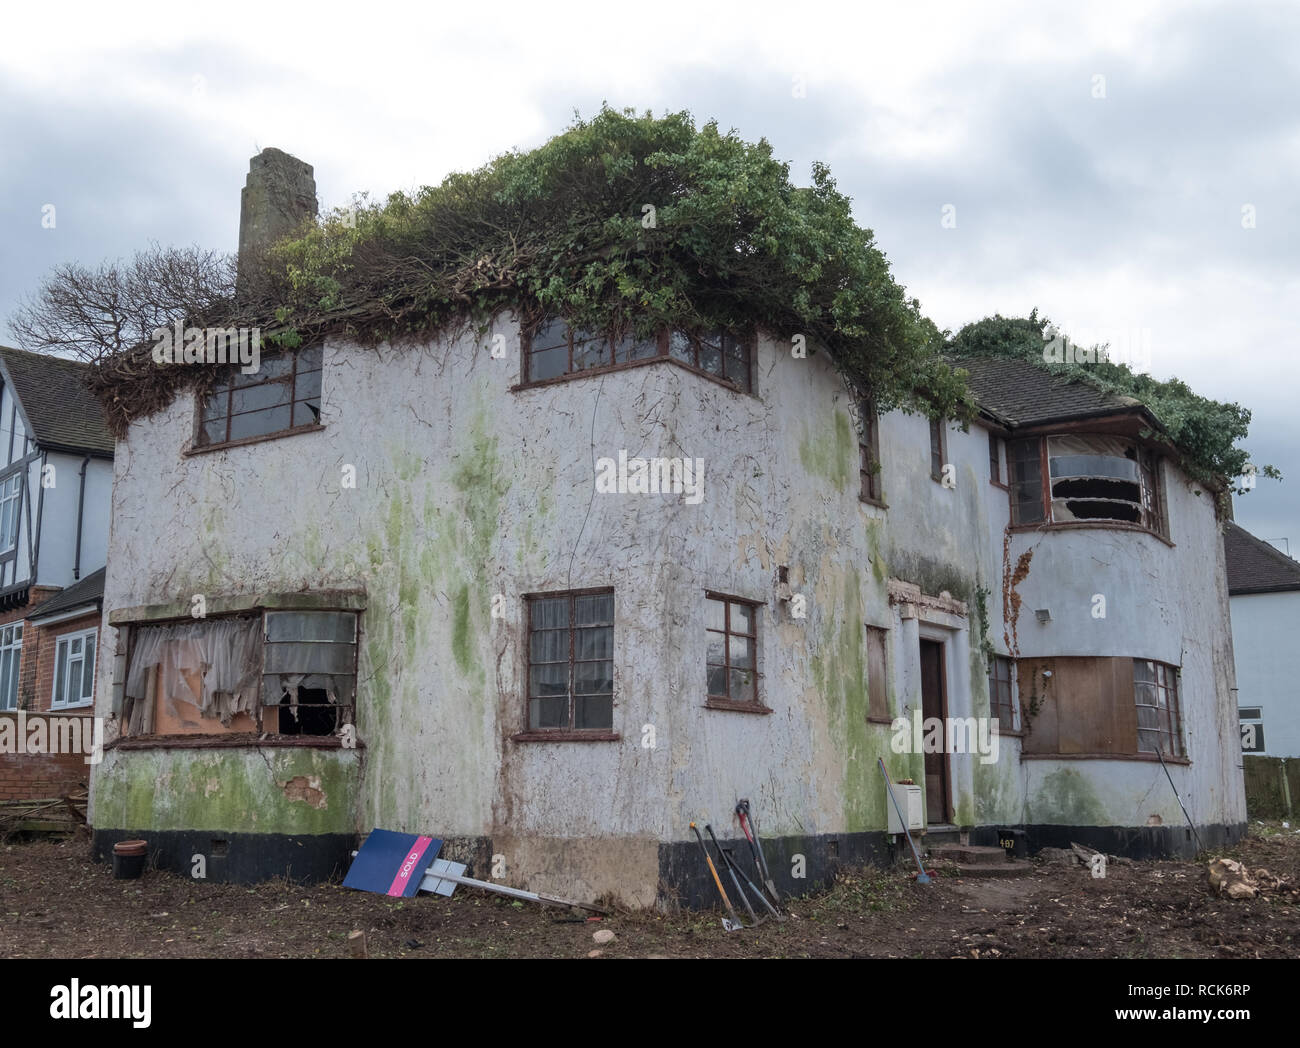 Exterior of derelict house built in 1930's deco style. House is due for demolition.Rayners Lane, Harrow, Middlesex, UK - Stock Image